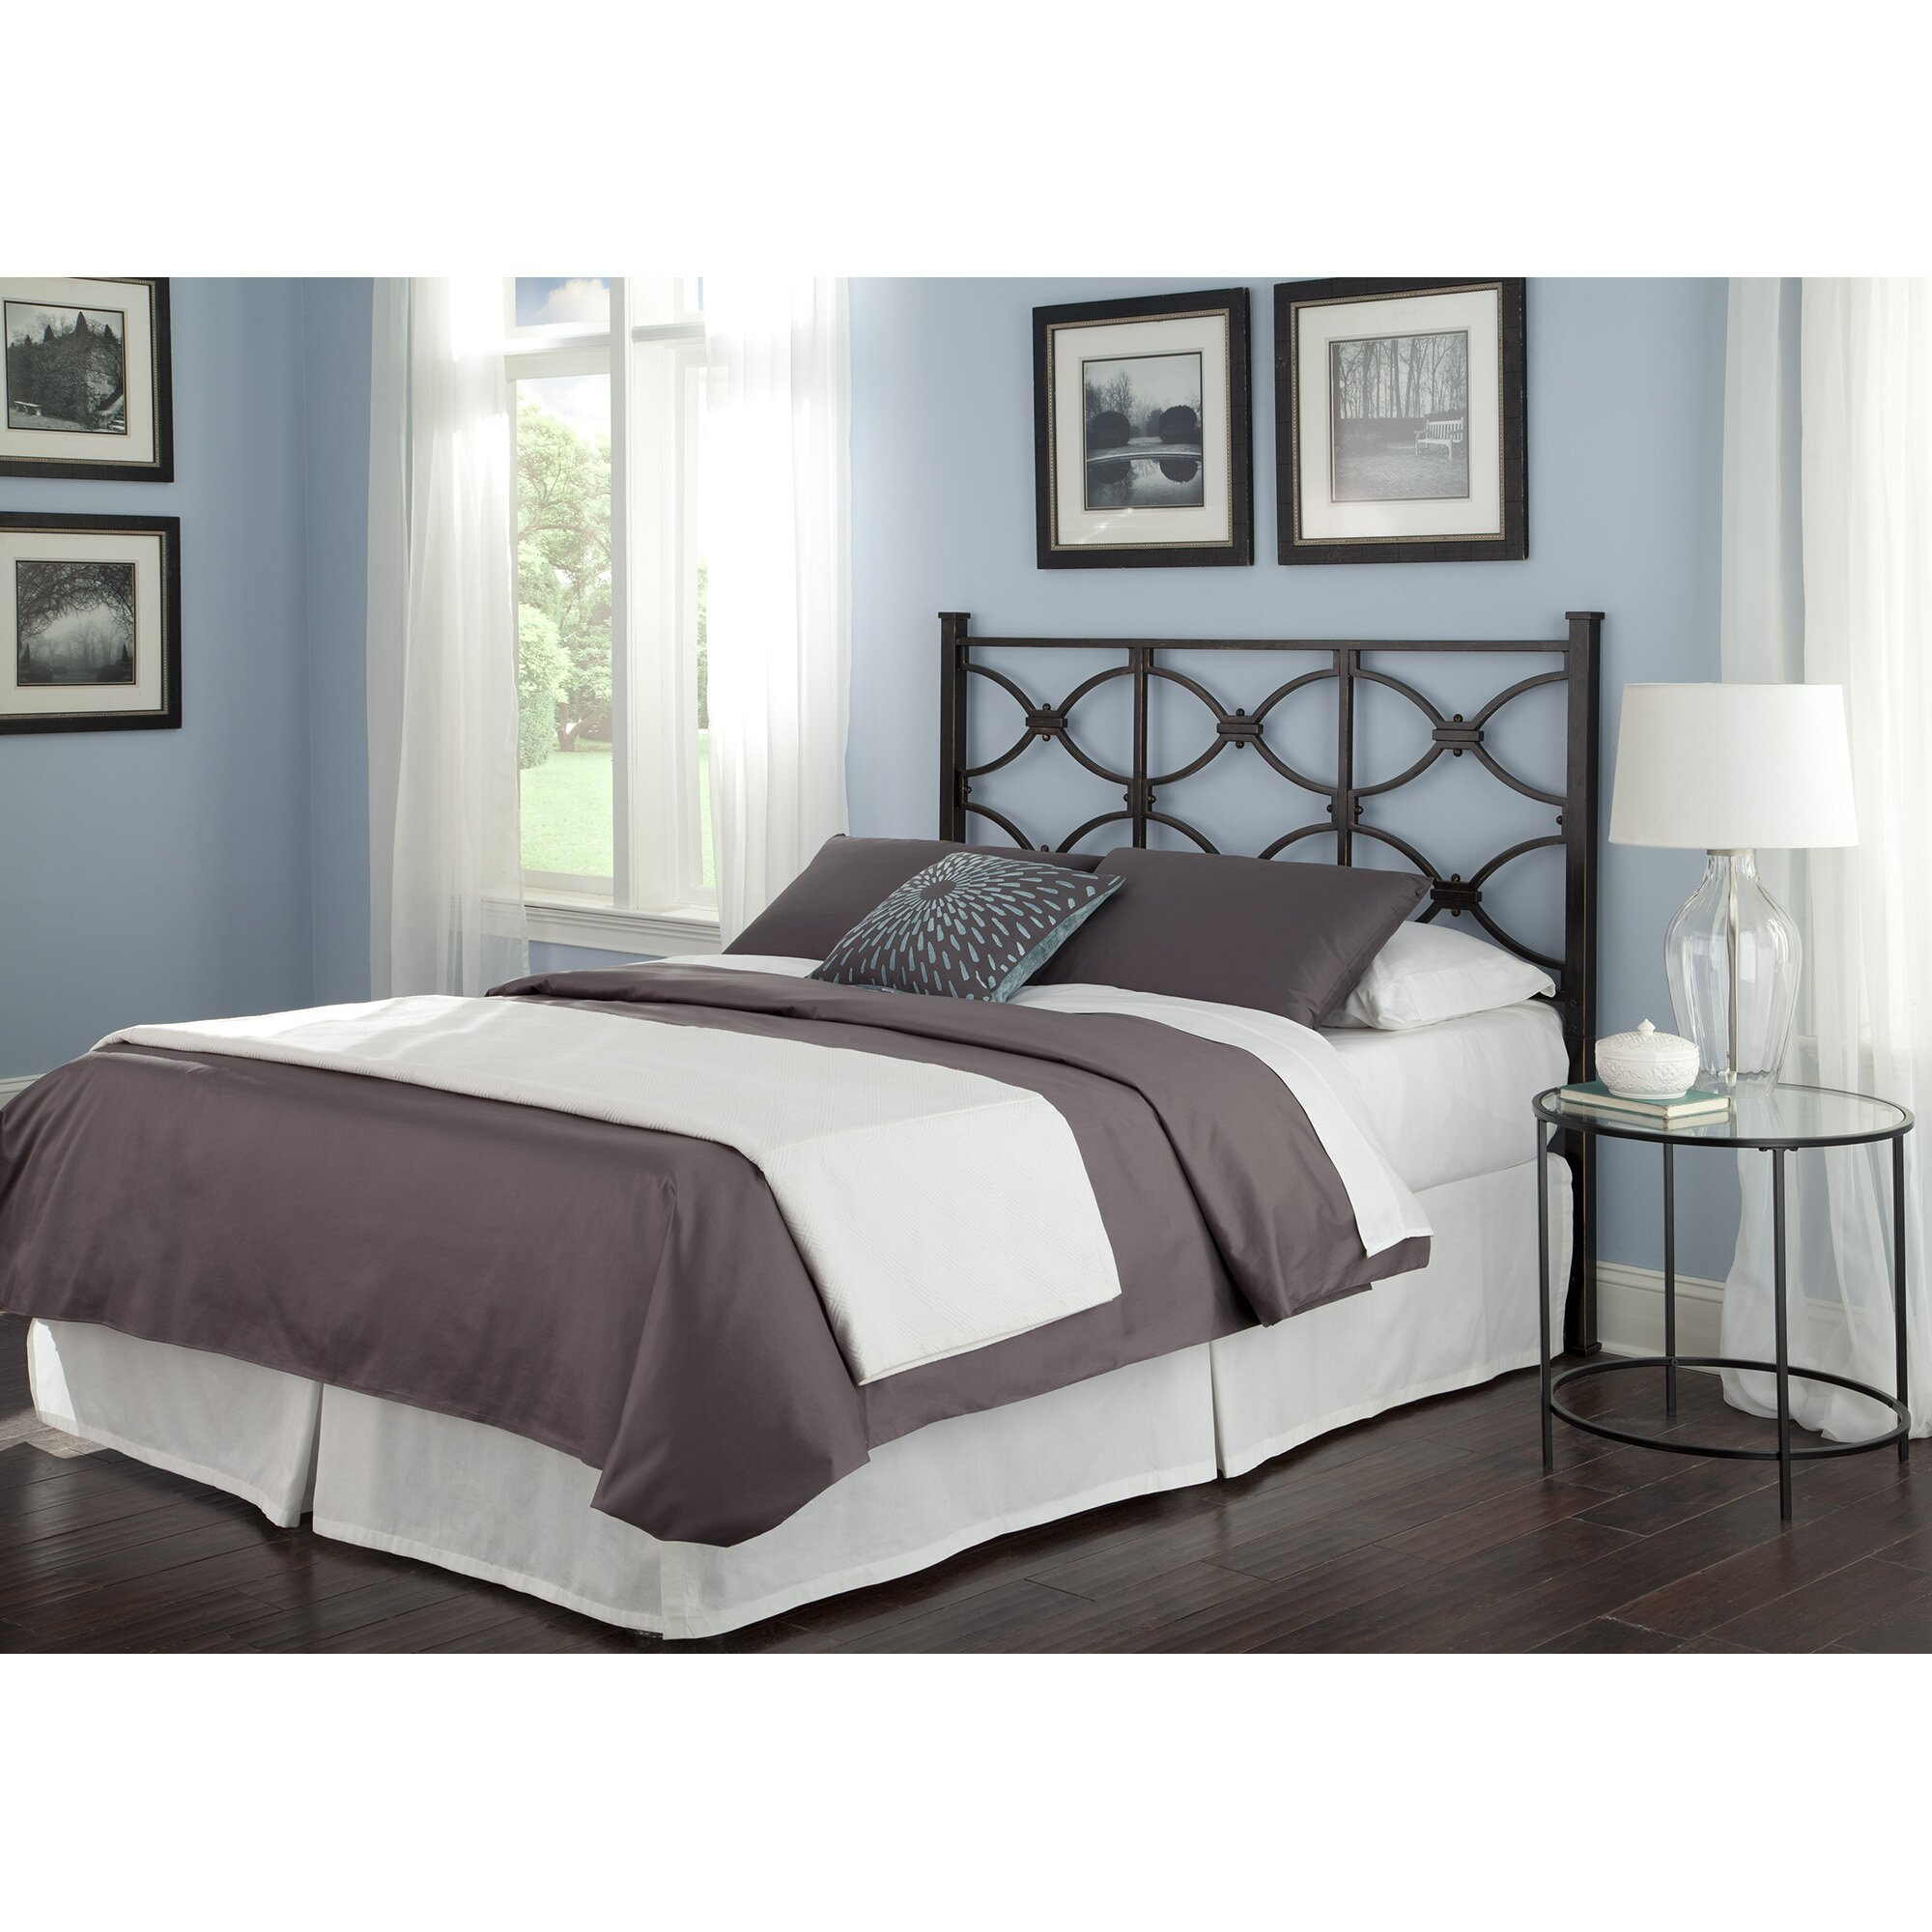 Fashion Bed Group Marlo California King Steel Headboard: california king headboard